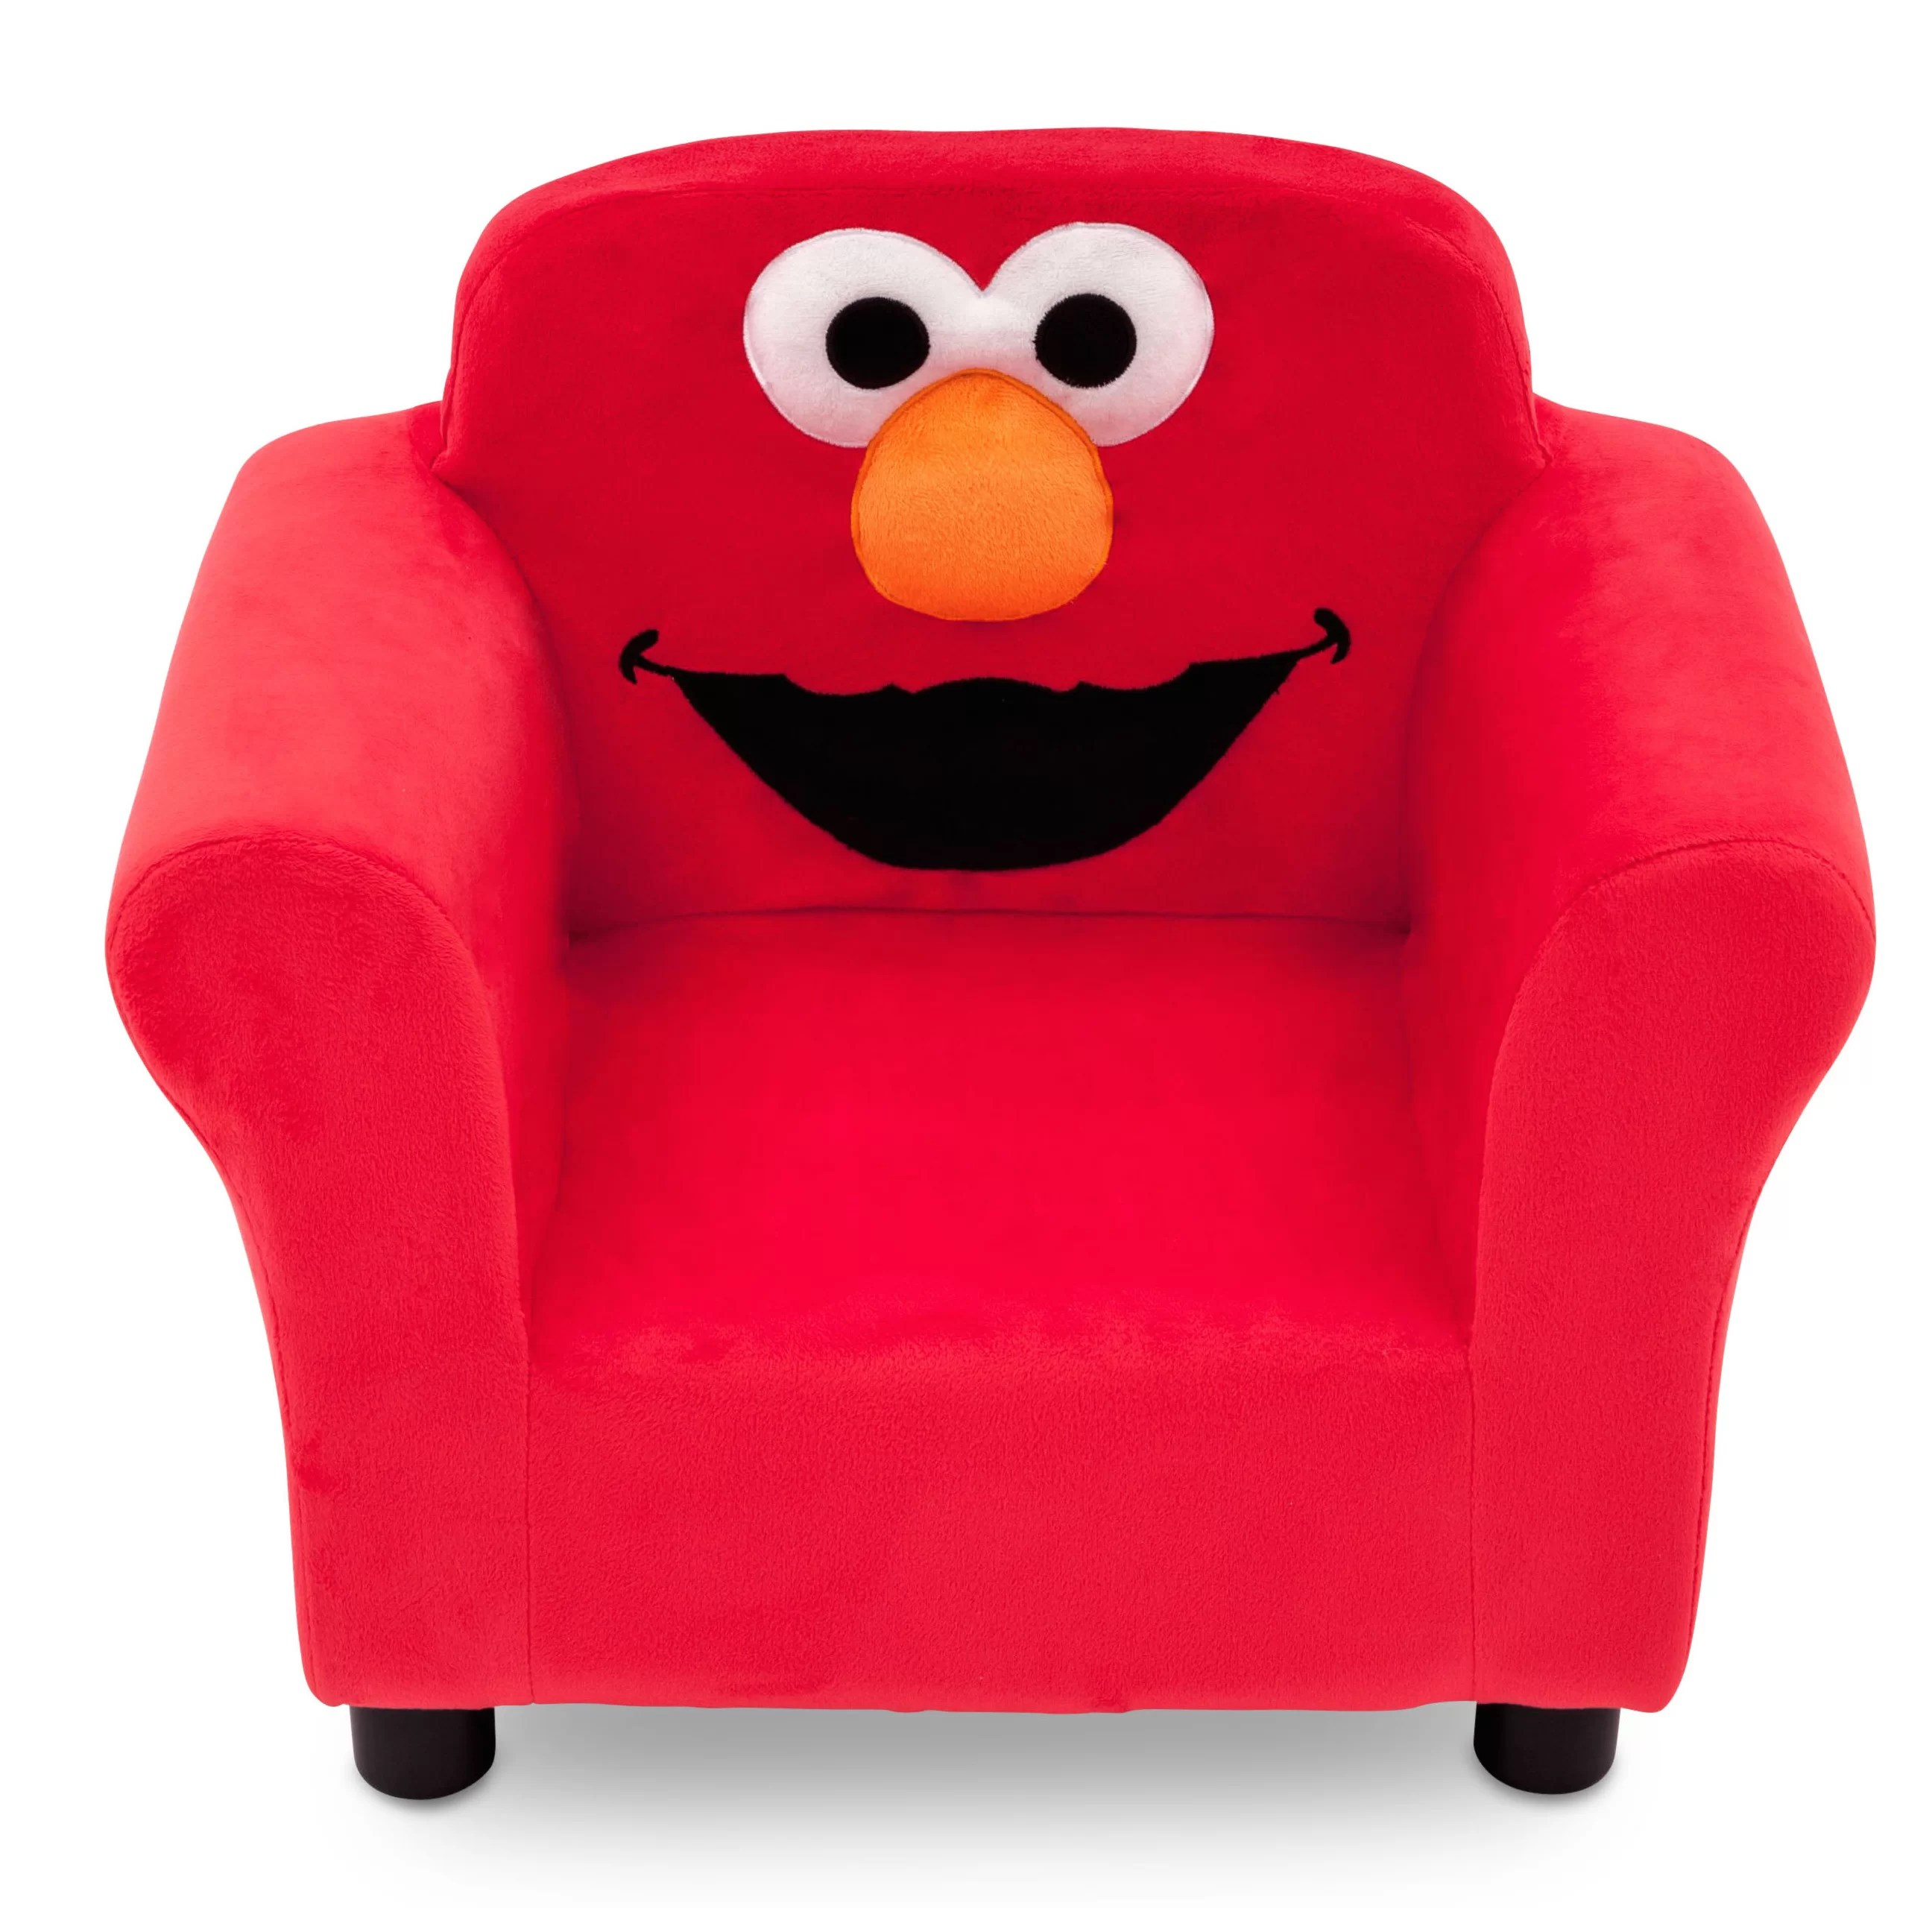 elmo table and chairs chair leg covers to protect floor delta children sesame street kids club wayfair